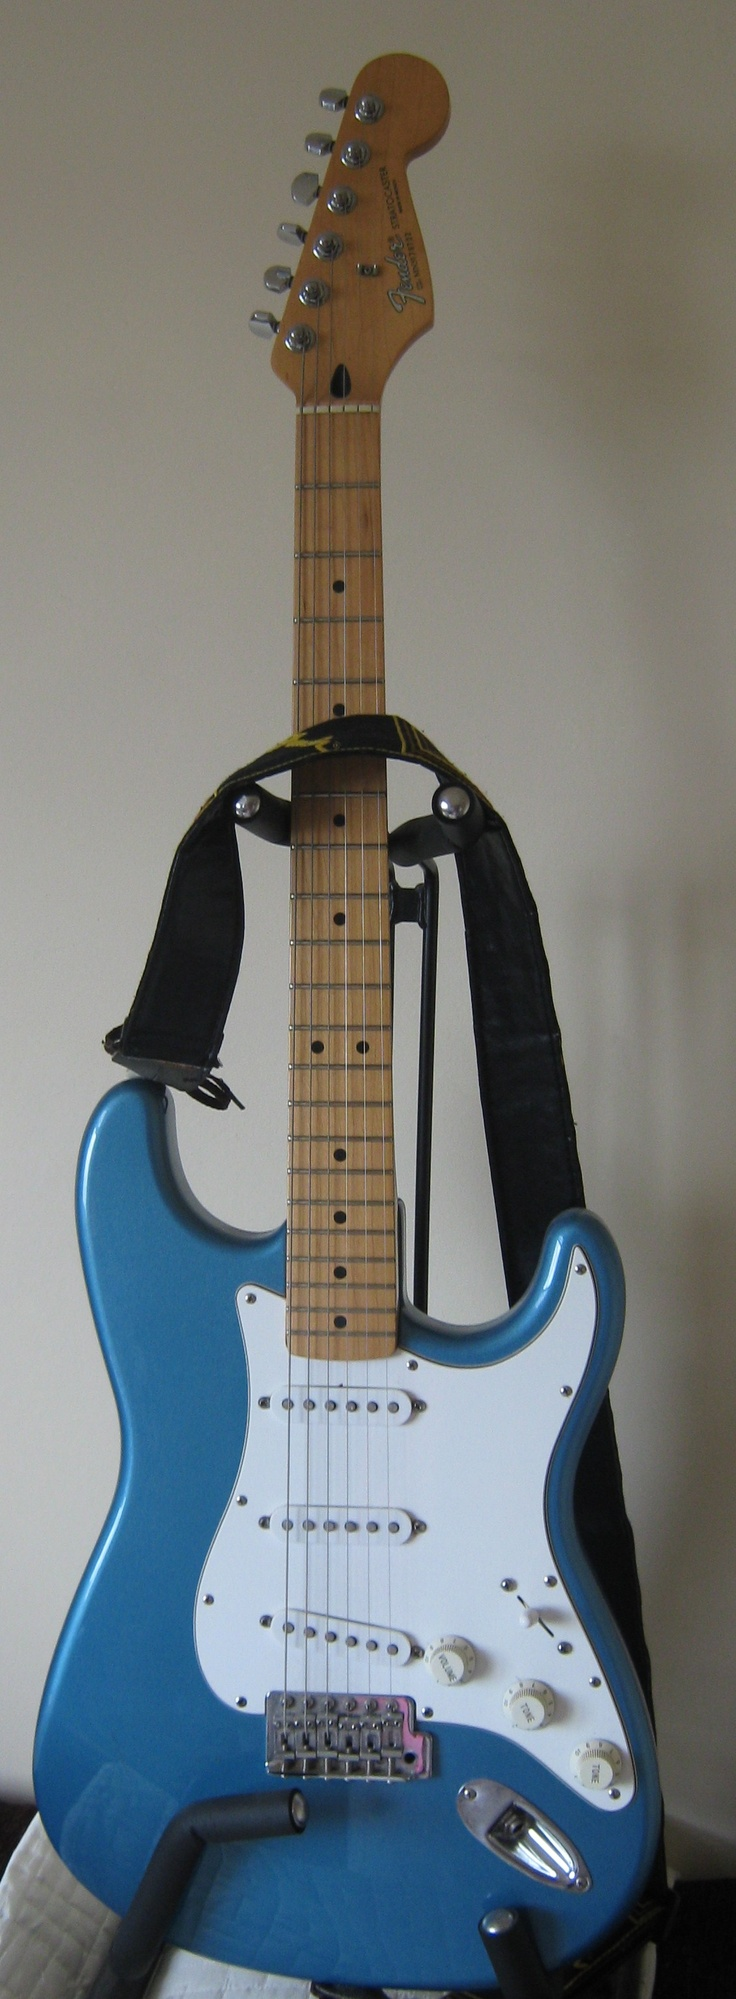 Fender Strat Mexican Blonde in Lake Placid Blue